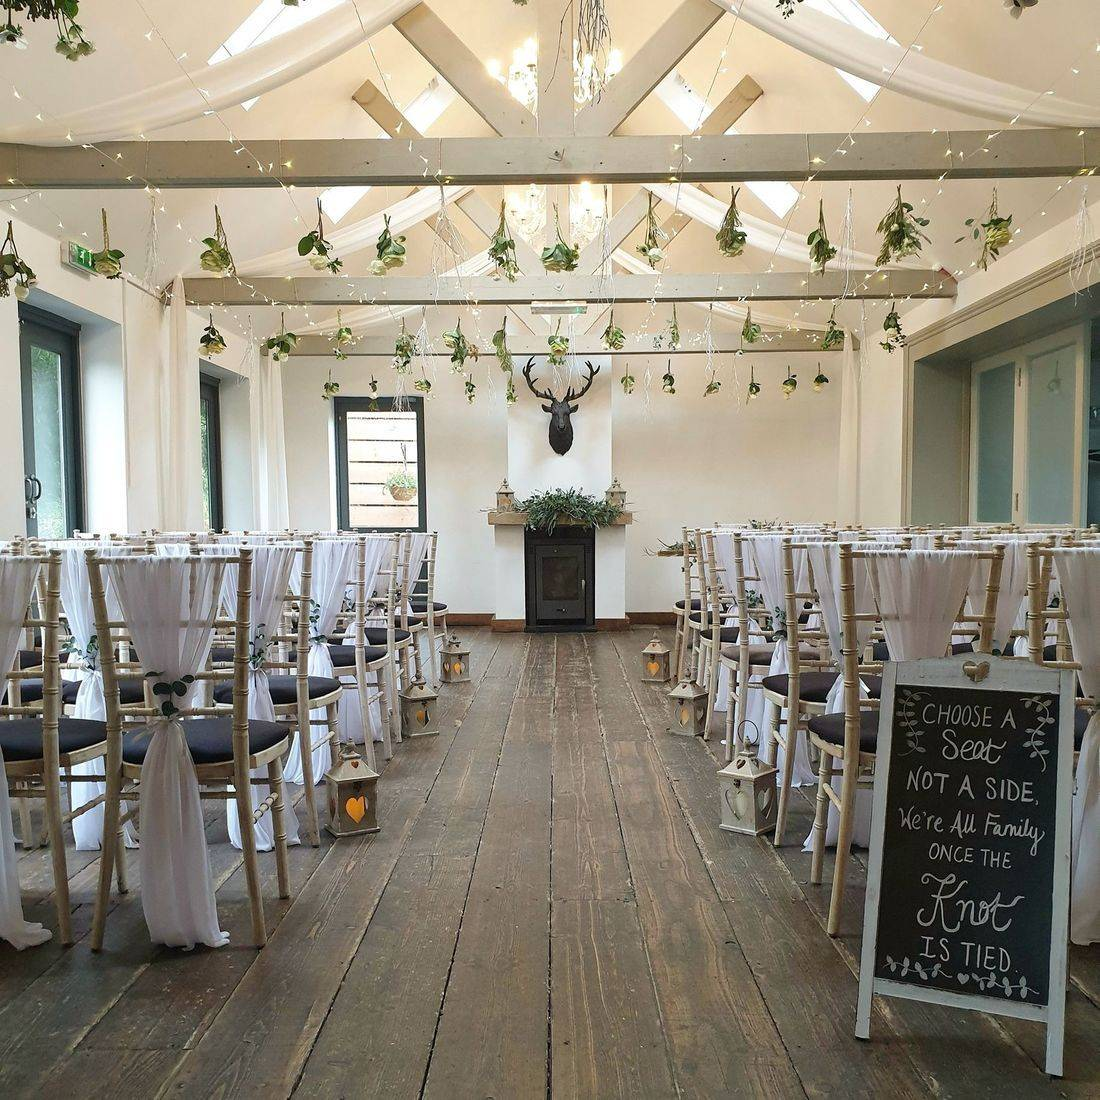 Weddings at the Old Vicarage Hinton Admiral